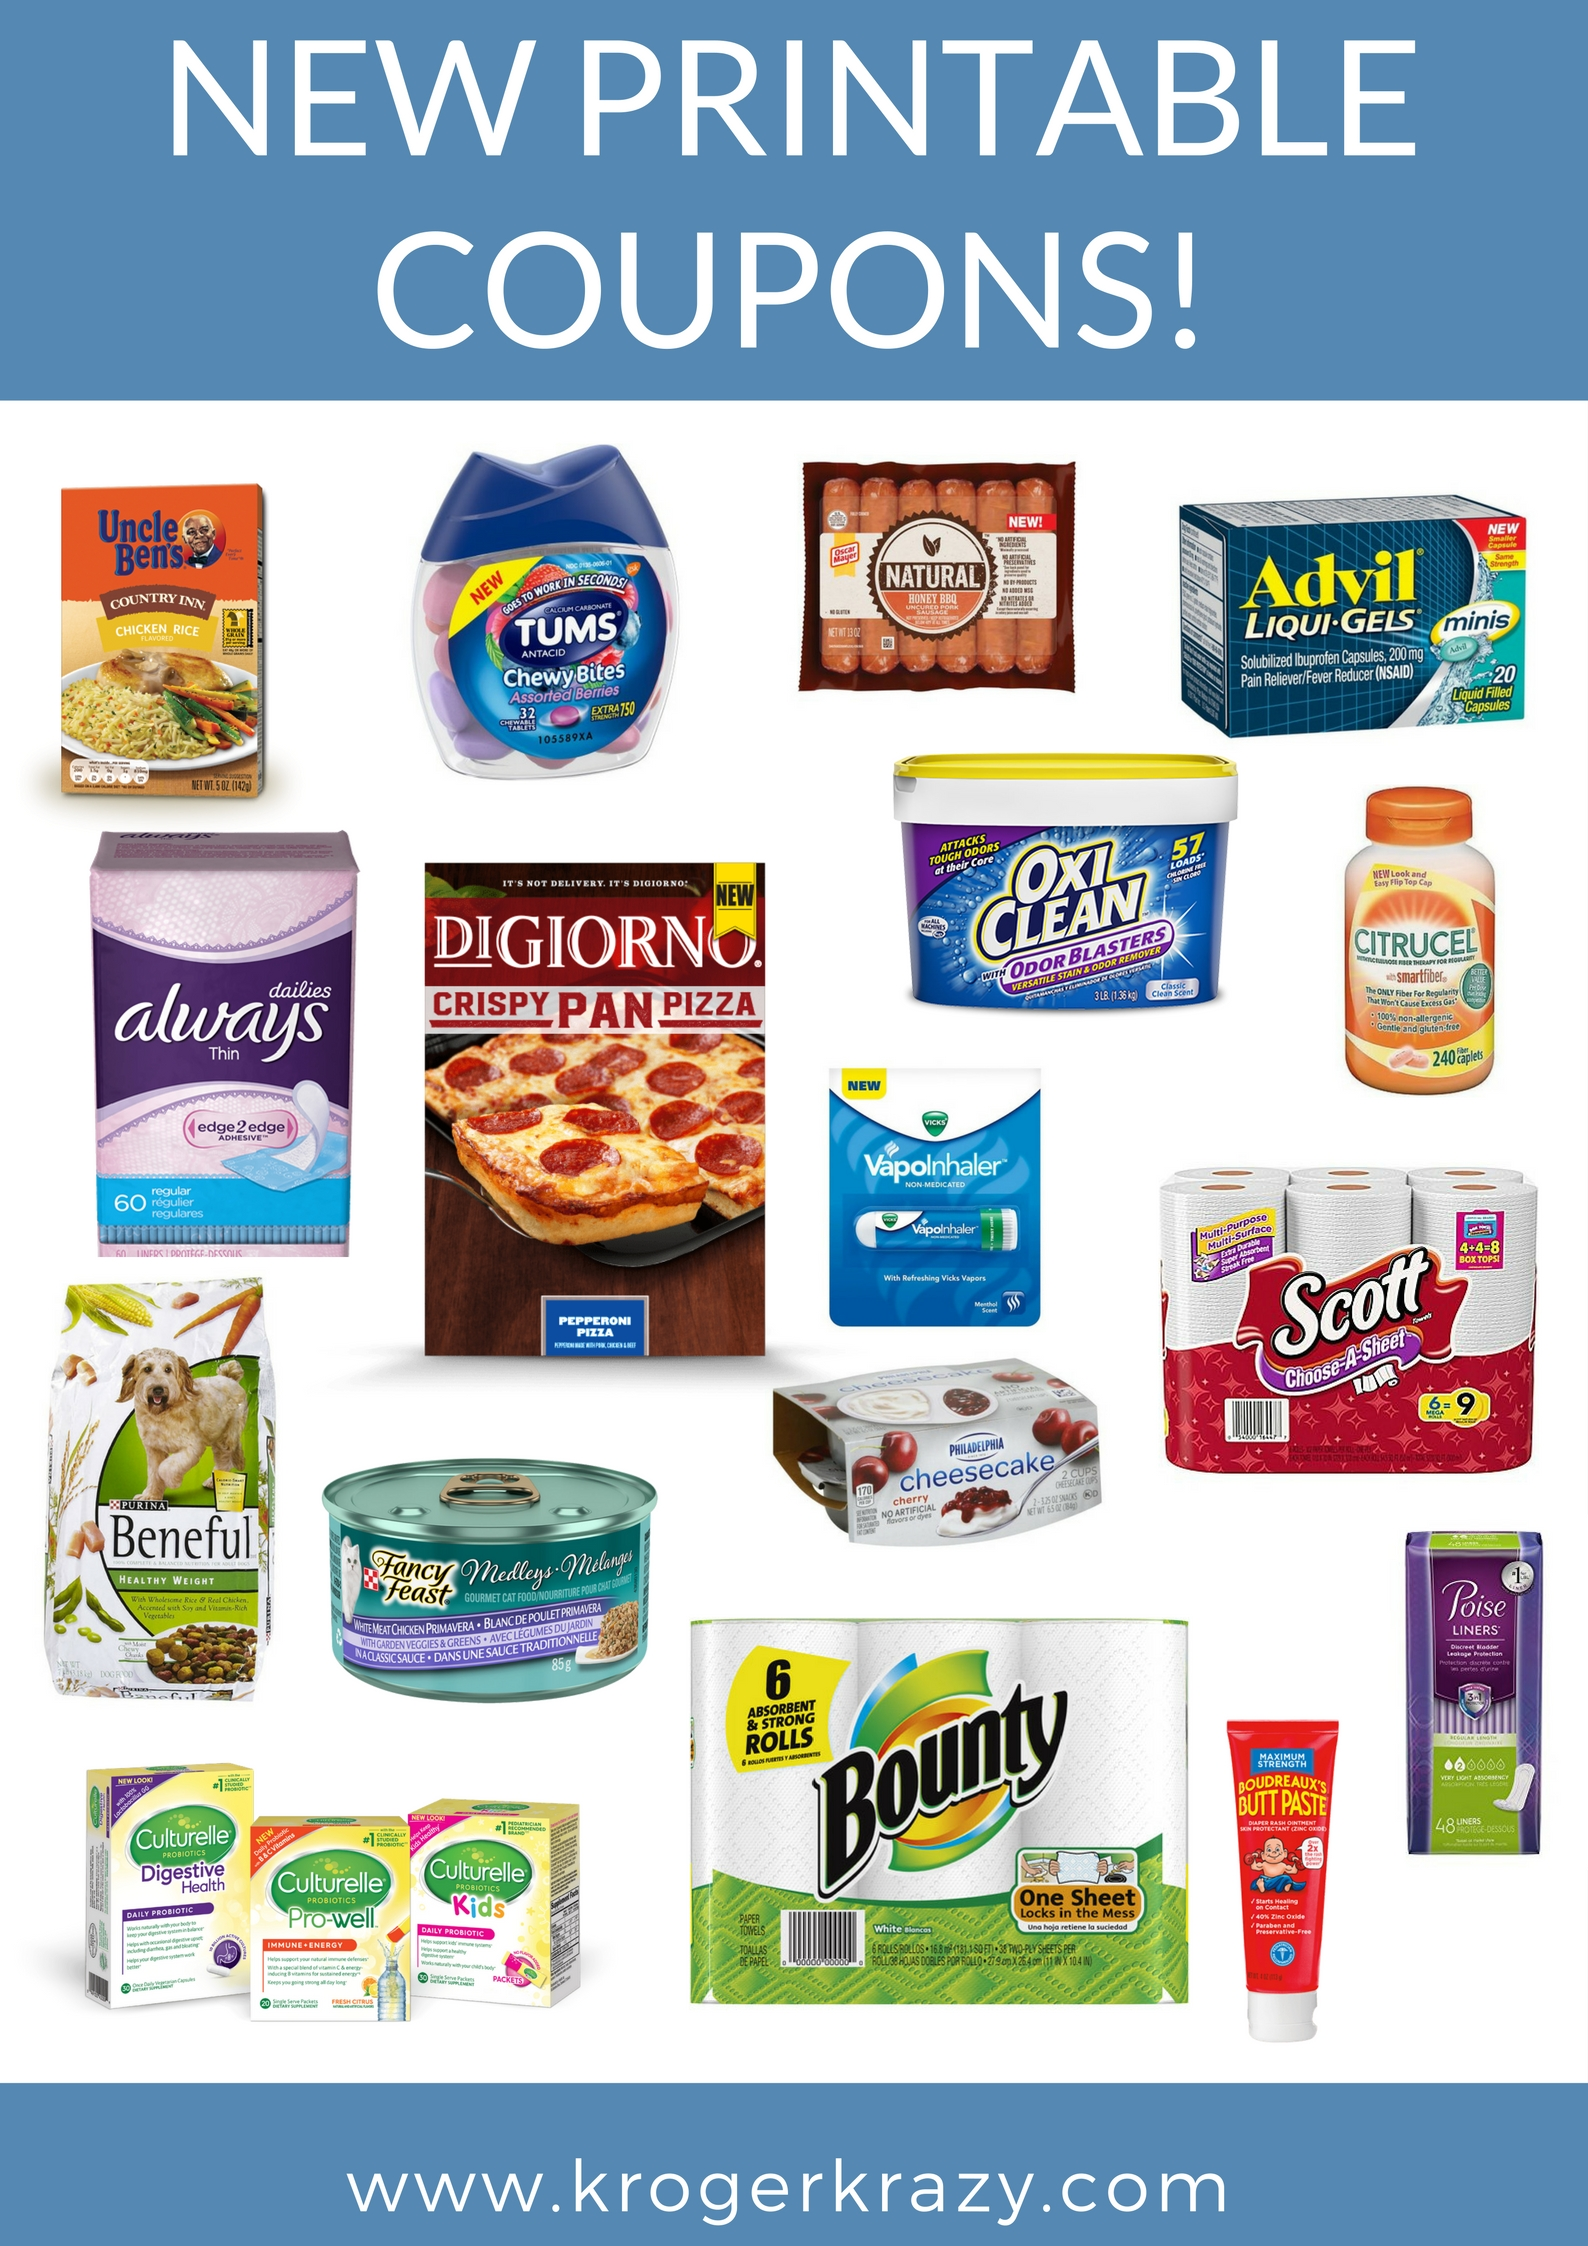 photograph about Tums Coupon Printable named Fresh new Printable Coupon codes! Tums, Tampax, DiGiorno, Often, Scott